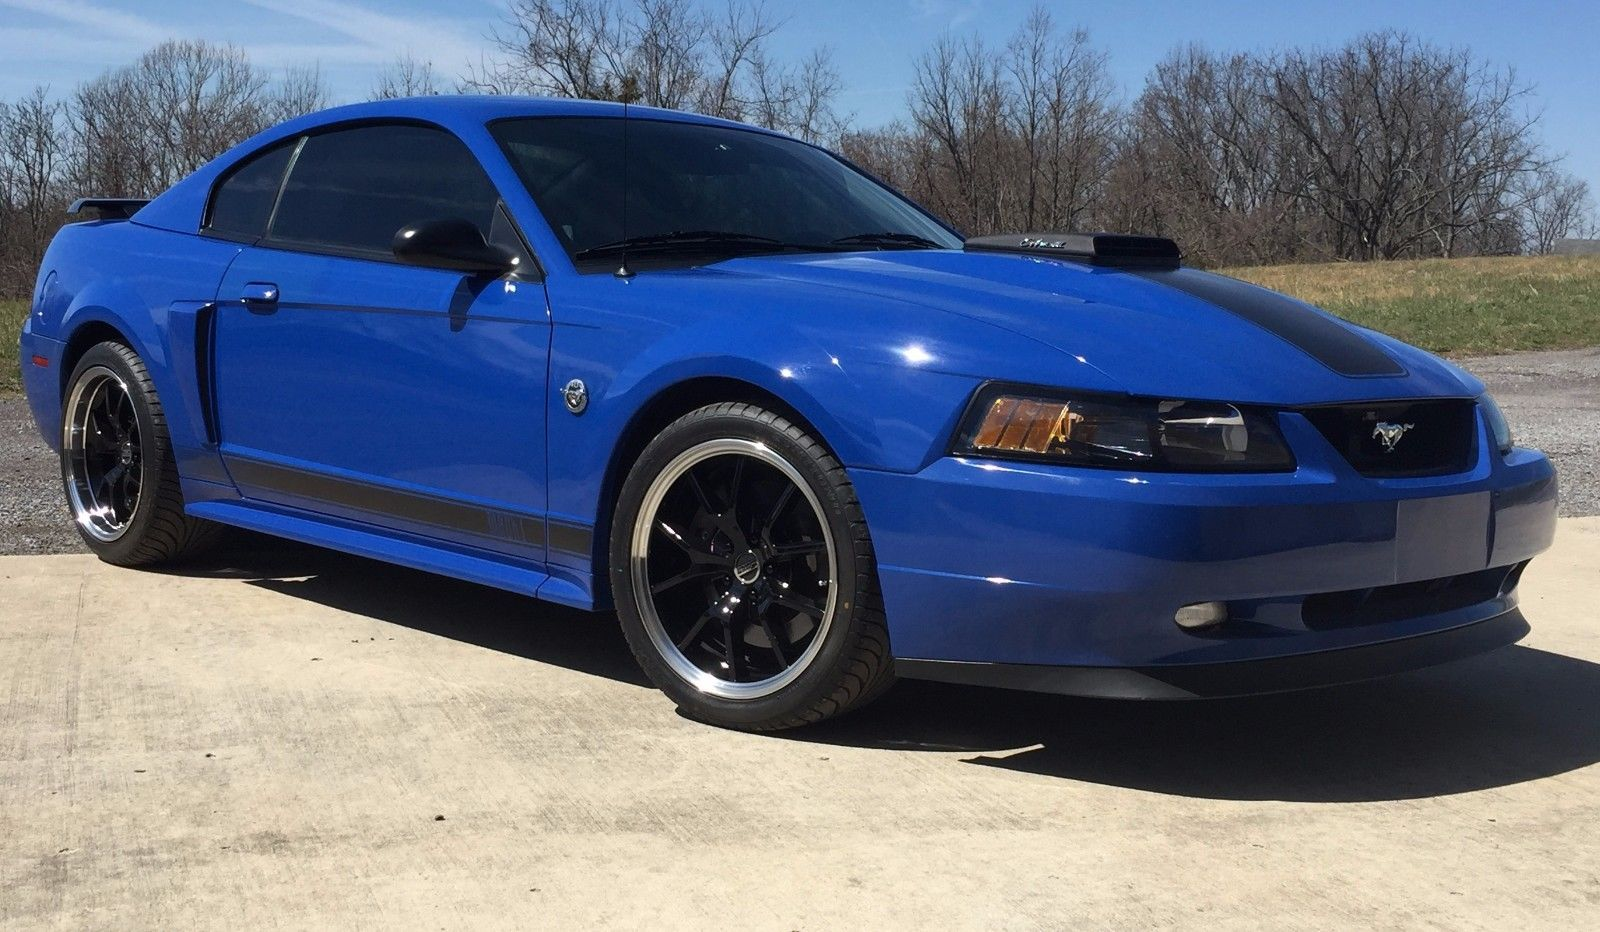 Awesome 2004 ford mustang mach 1 2004 mustang mach 1 azure blue 4 6 4 valve automatic 16k miles 2017 2018